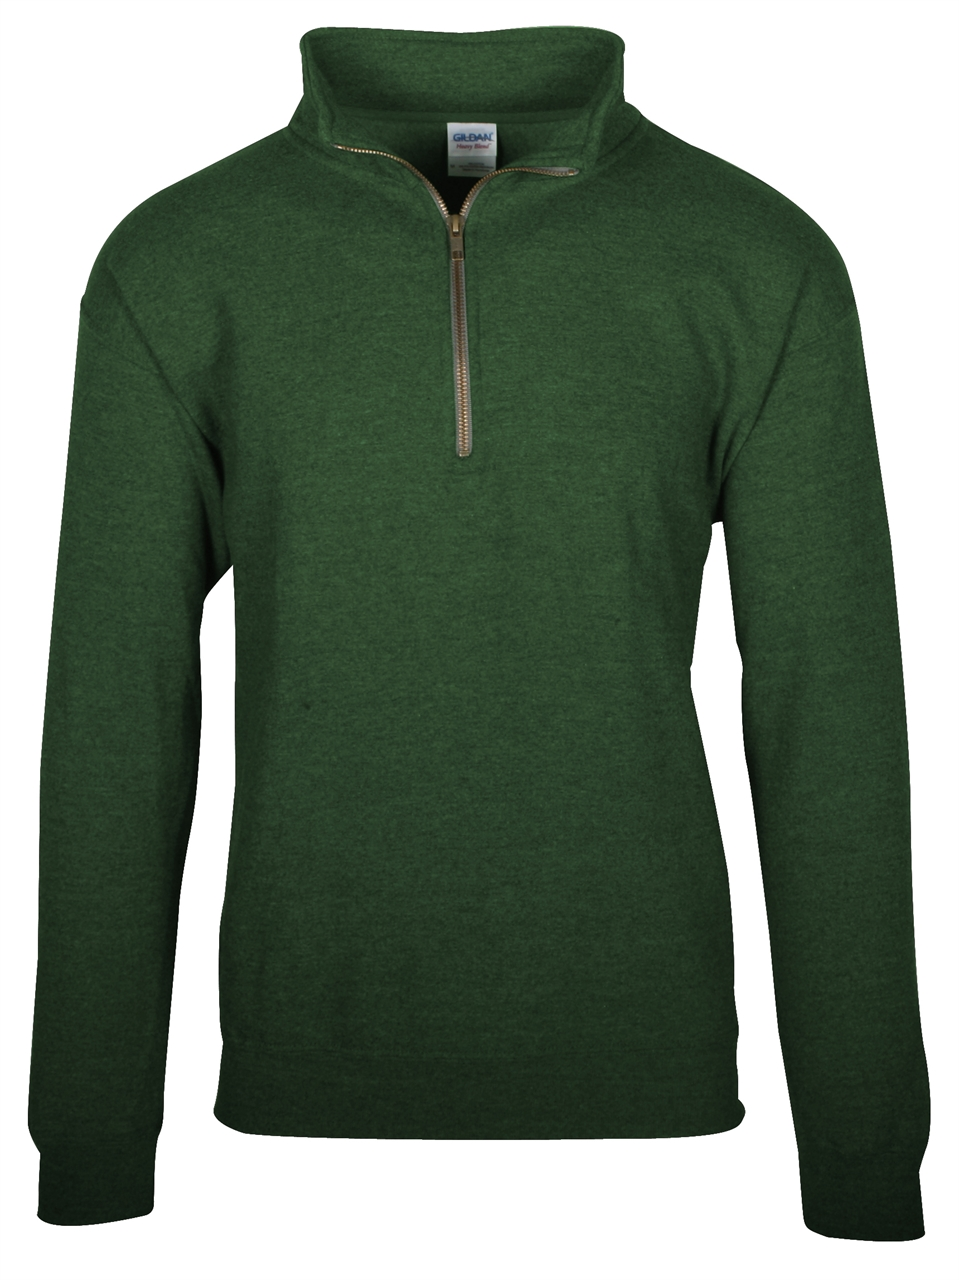 Picture of Gildan Heavy Blend Vintage 1/4 Cadet Collar Sweatshirt